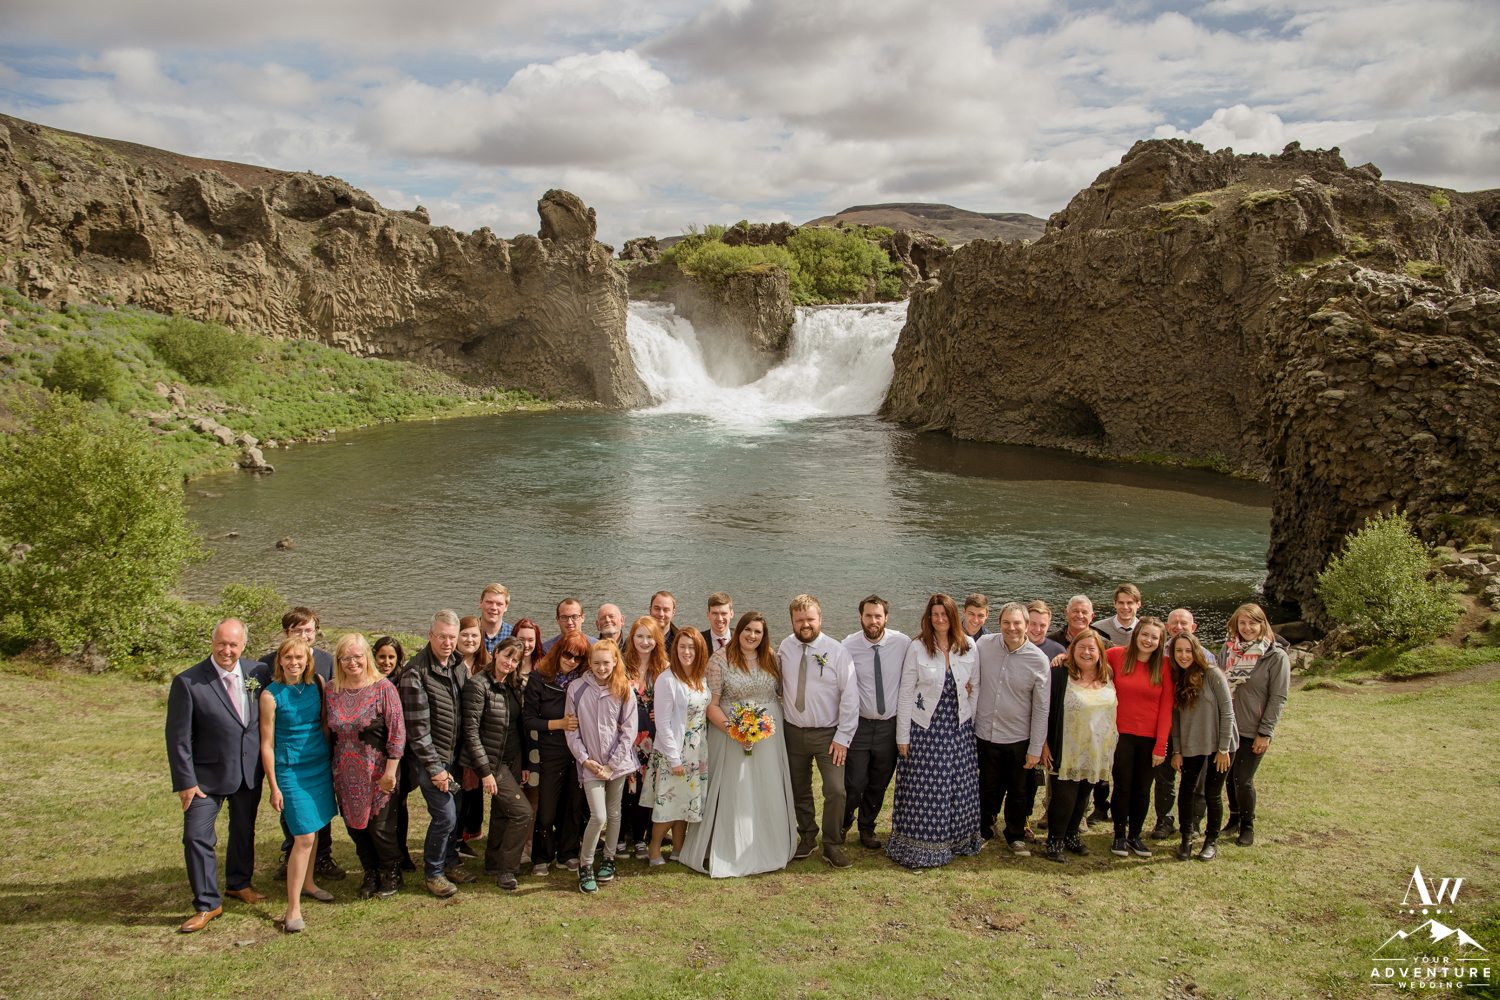 Iceland Wedding Group Photo at Hjalparfoss Waterfall